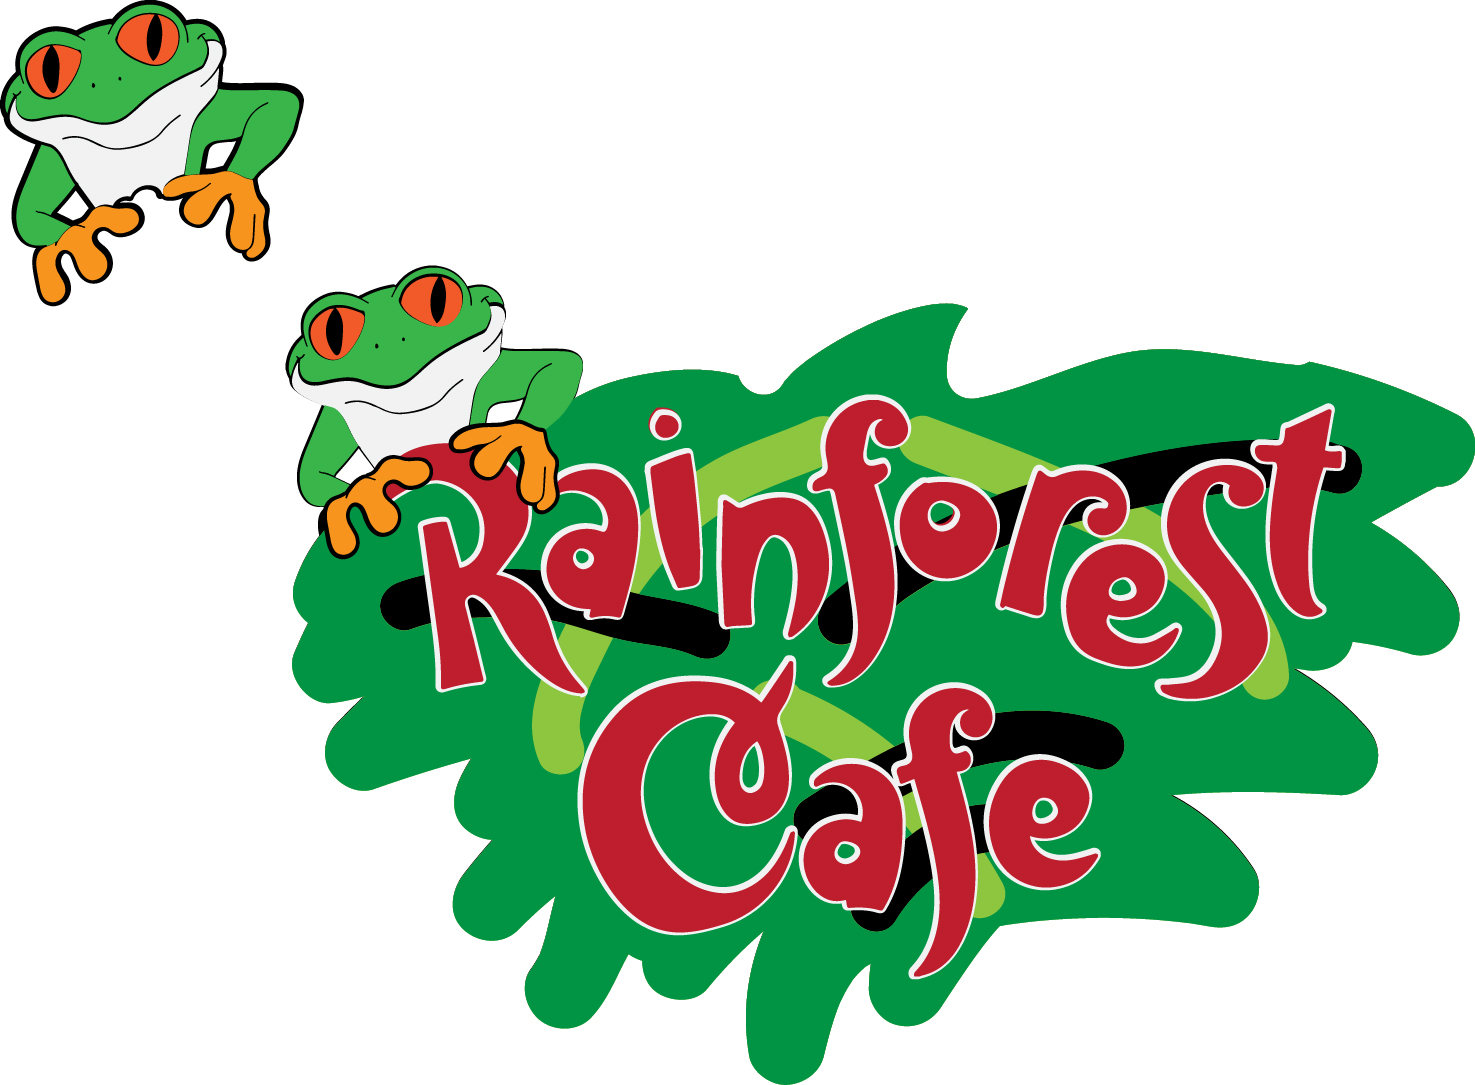 1475x1085 Rainforest Cafe Title And Frog Digital File Svg, Dxf, Jpg, Png